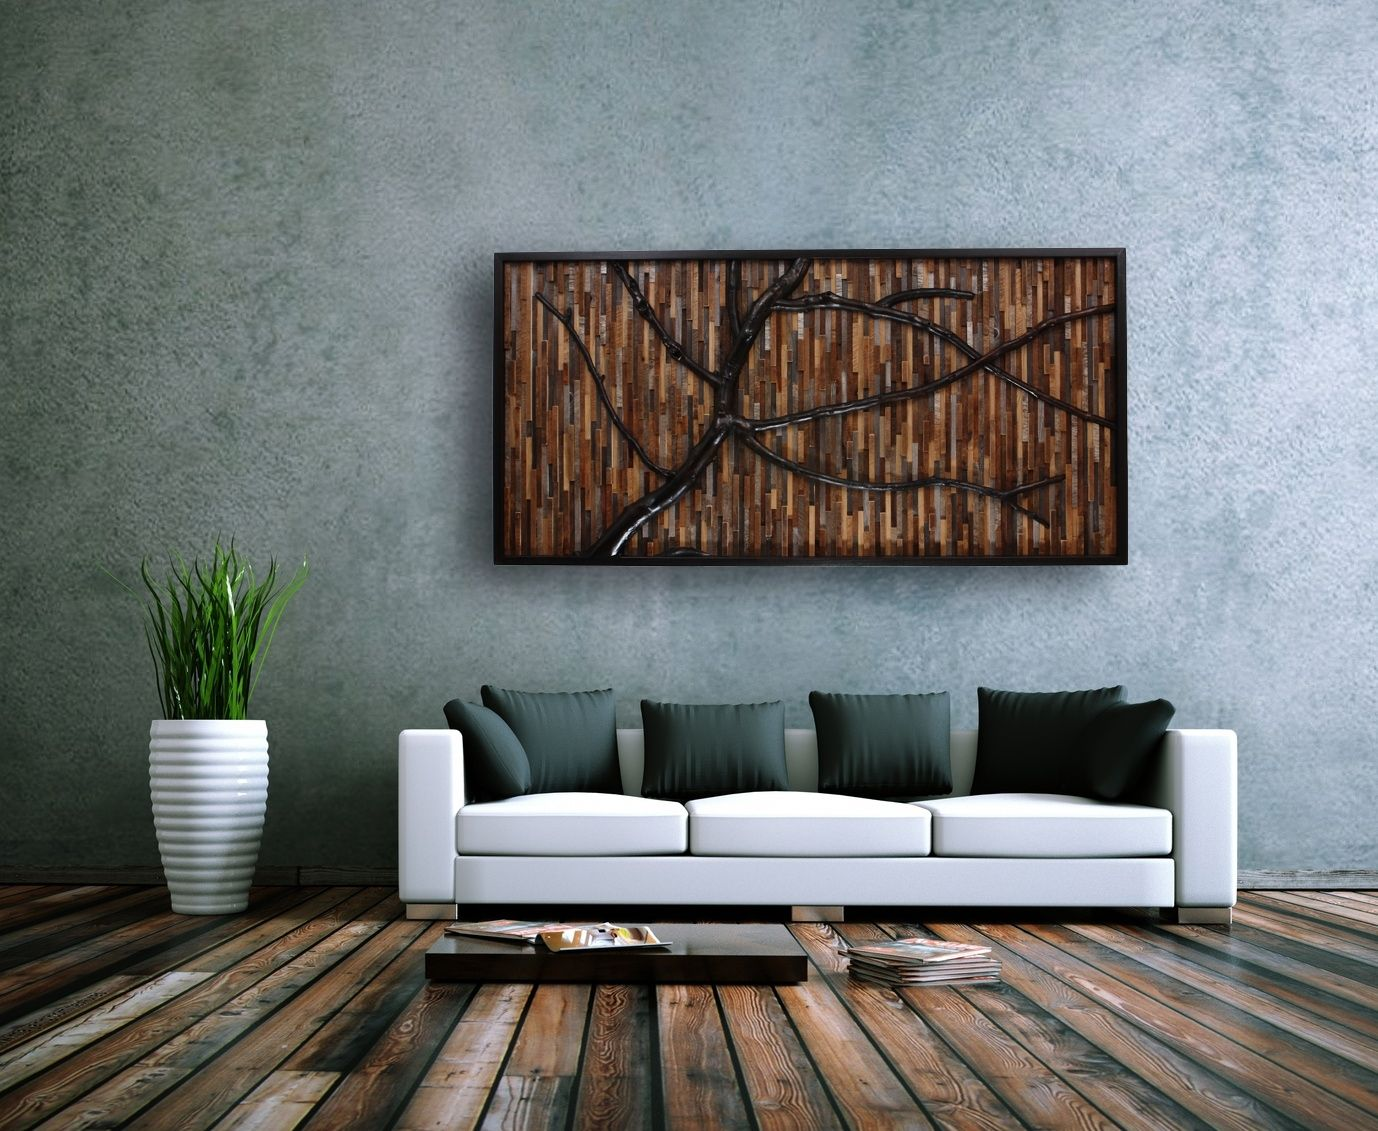 Wood Tree Wall Decor Hand Crafted Reclaimed Wood Wall Art That Evokes A Wind